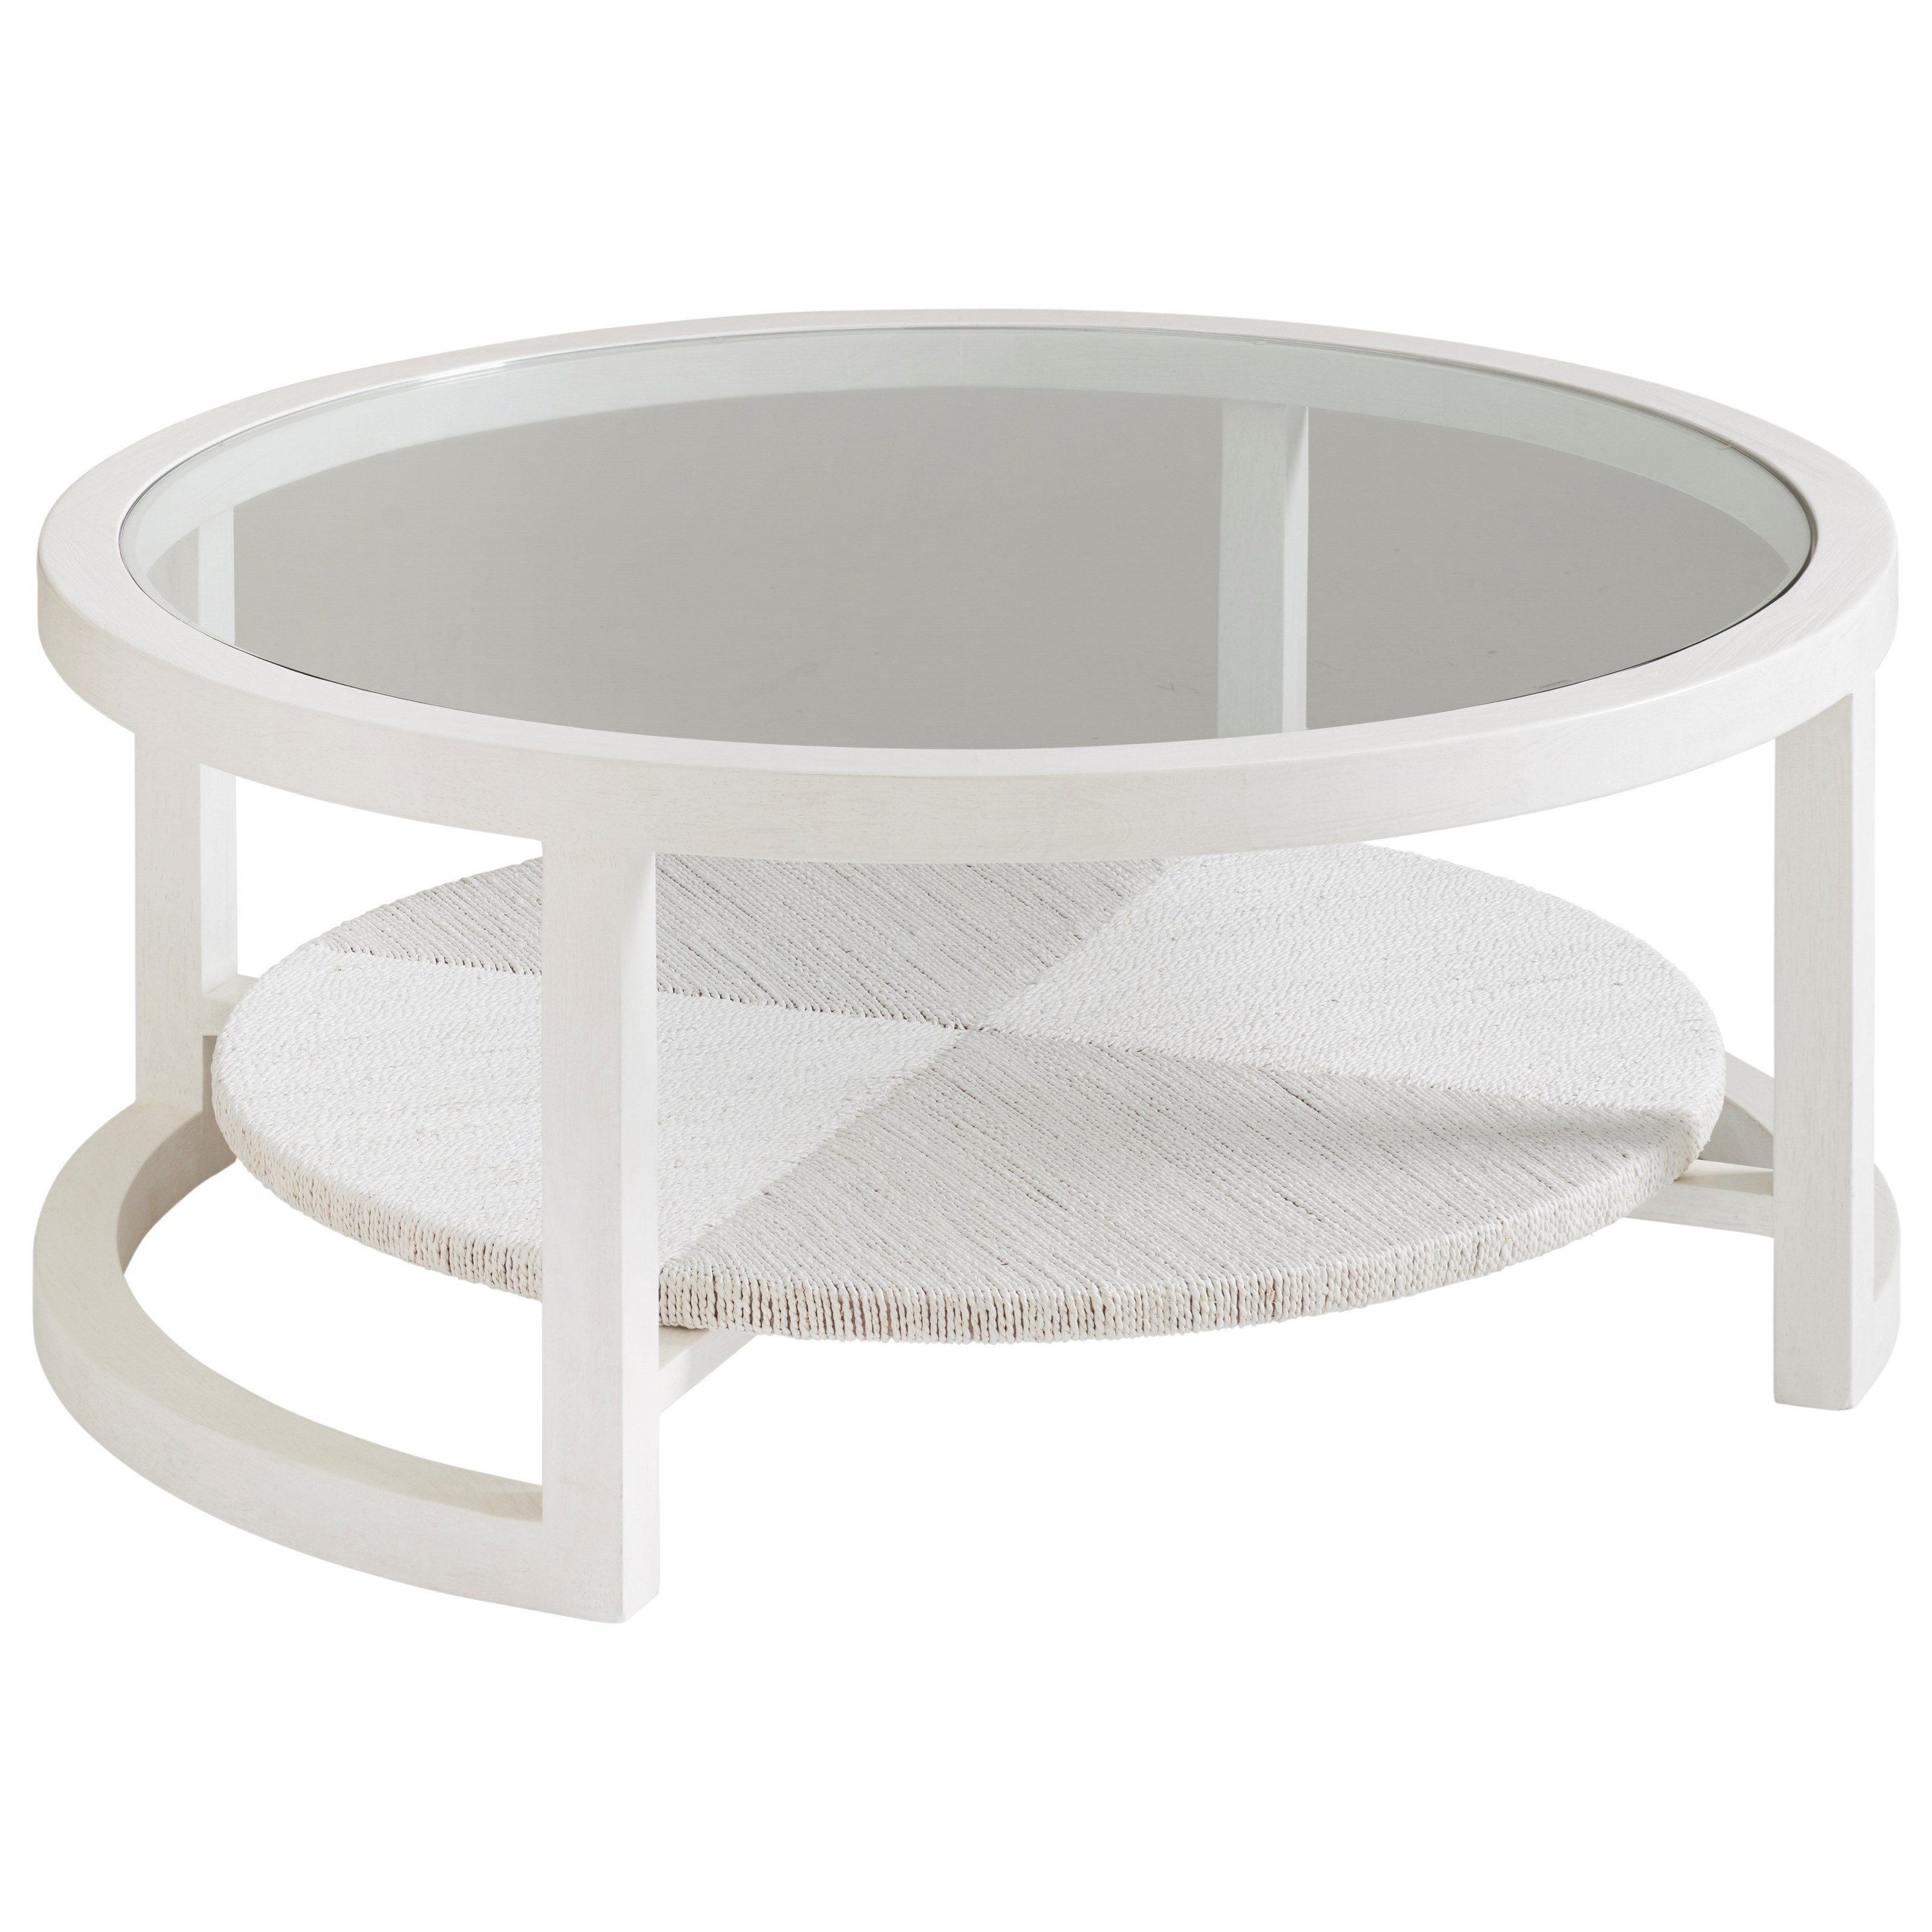 Ocean Breeze Pompano Round Cocktail Table by Tommy Bahama Home at Baer's Furniture